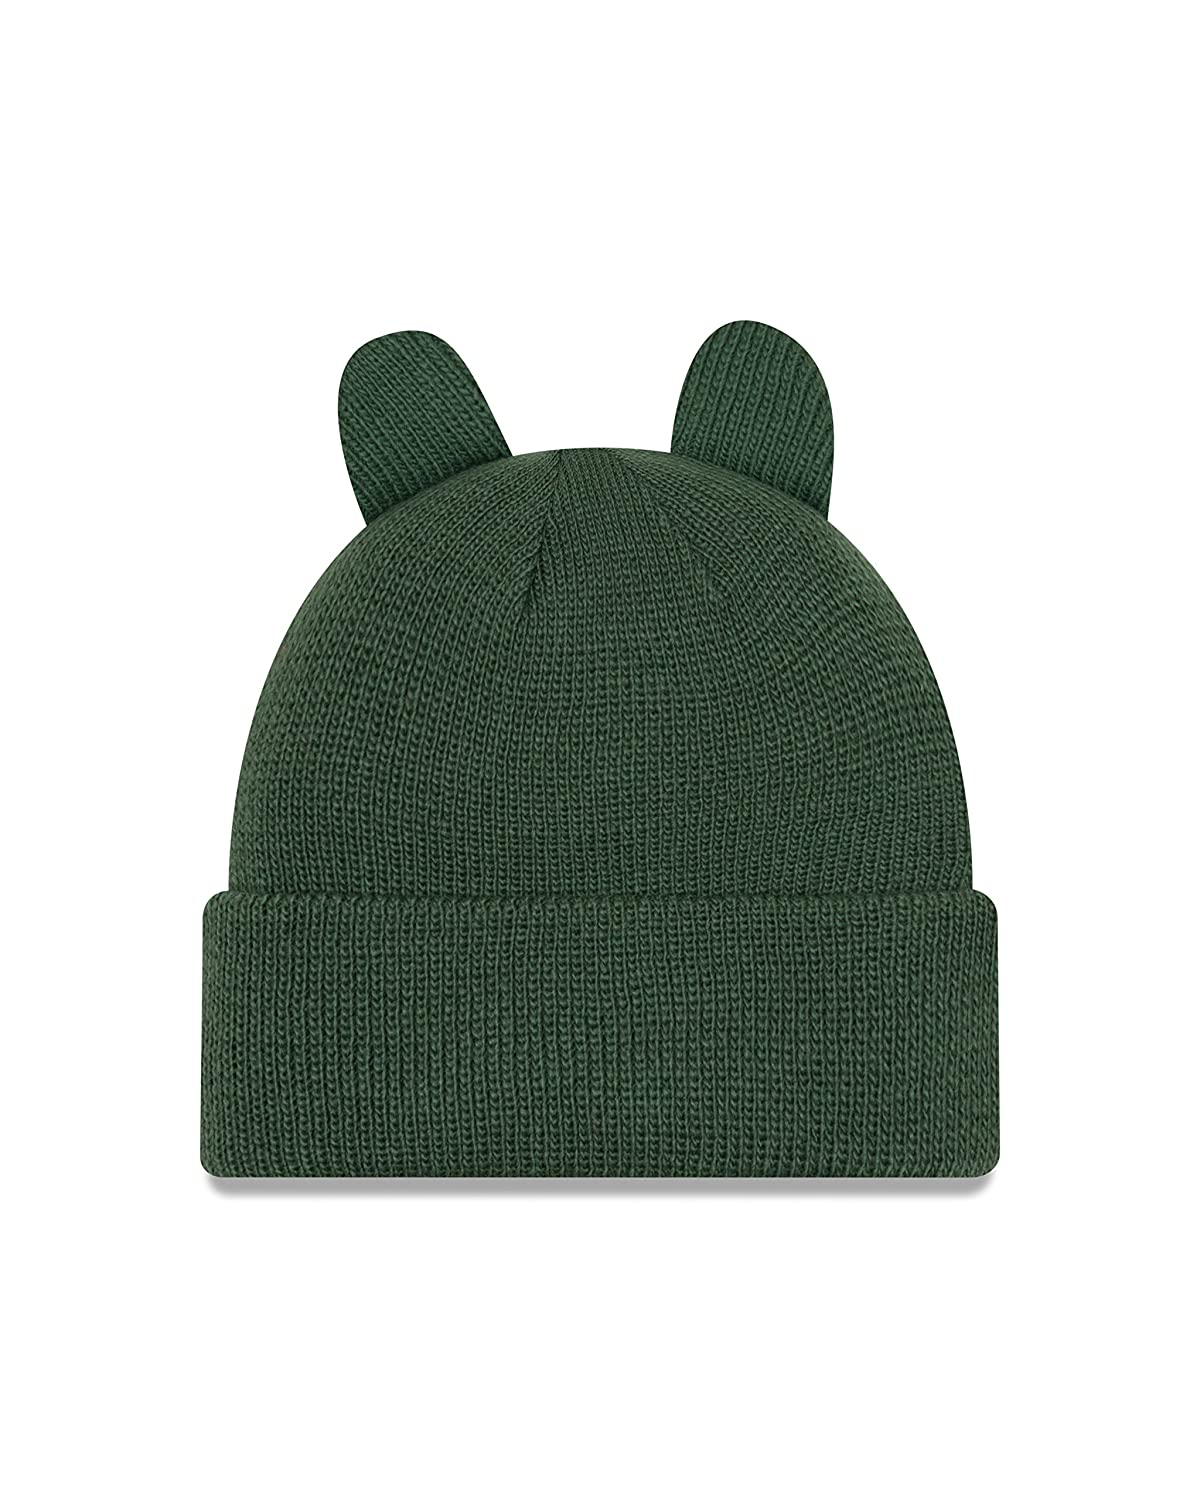 low priced c4ff4 a1bd1 Amazon.com   New Era Green Bay Packers Cozy Cutie Youth Knit Hat   Sports    Outdoors